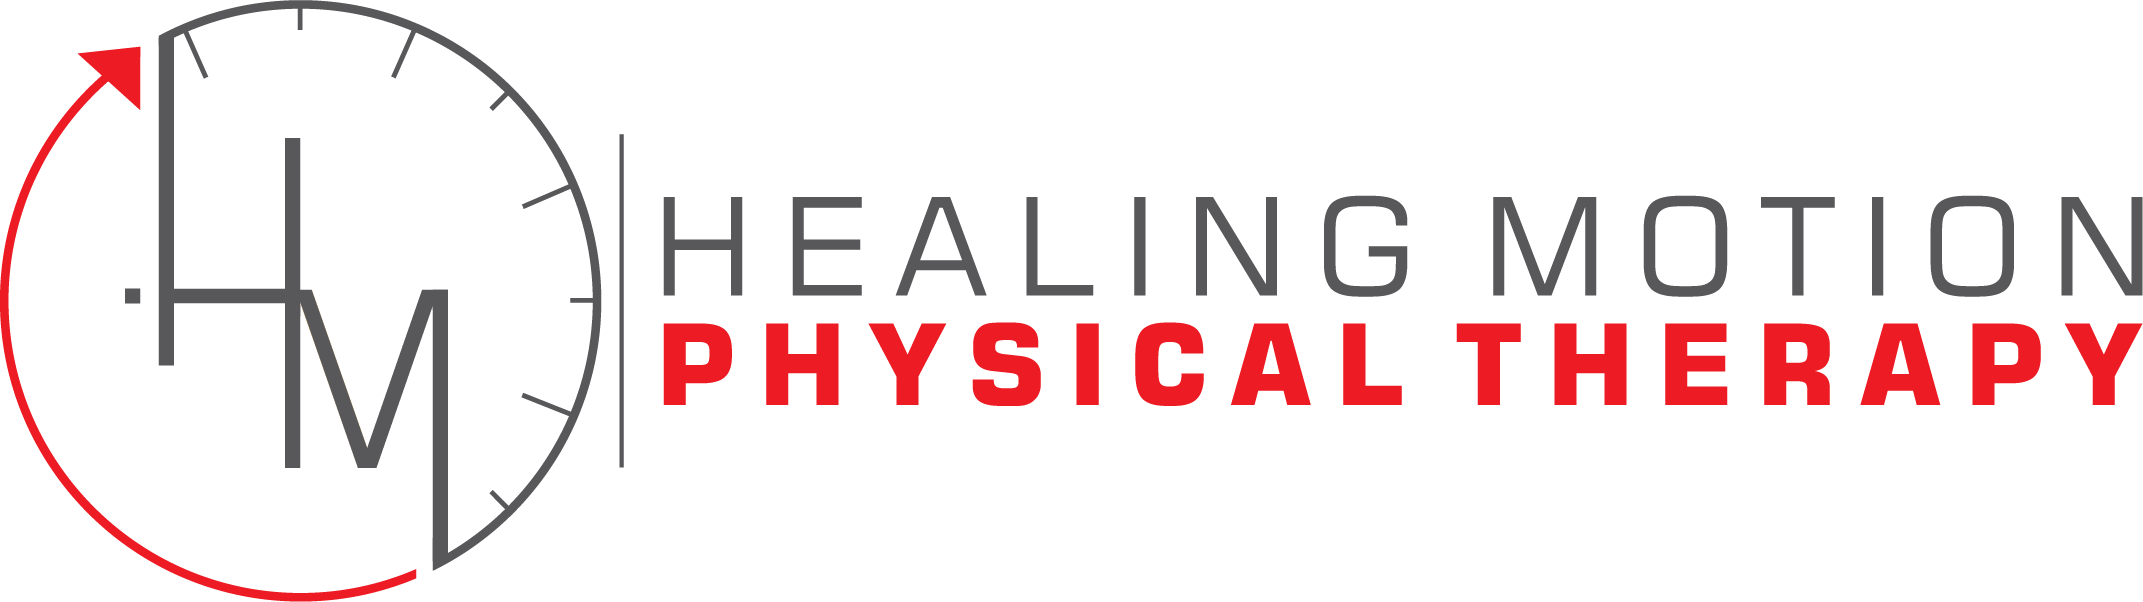 Physical Therapy Corvallis Oregon